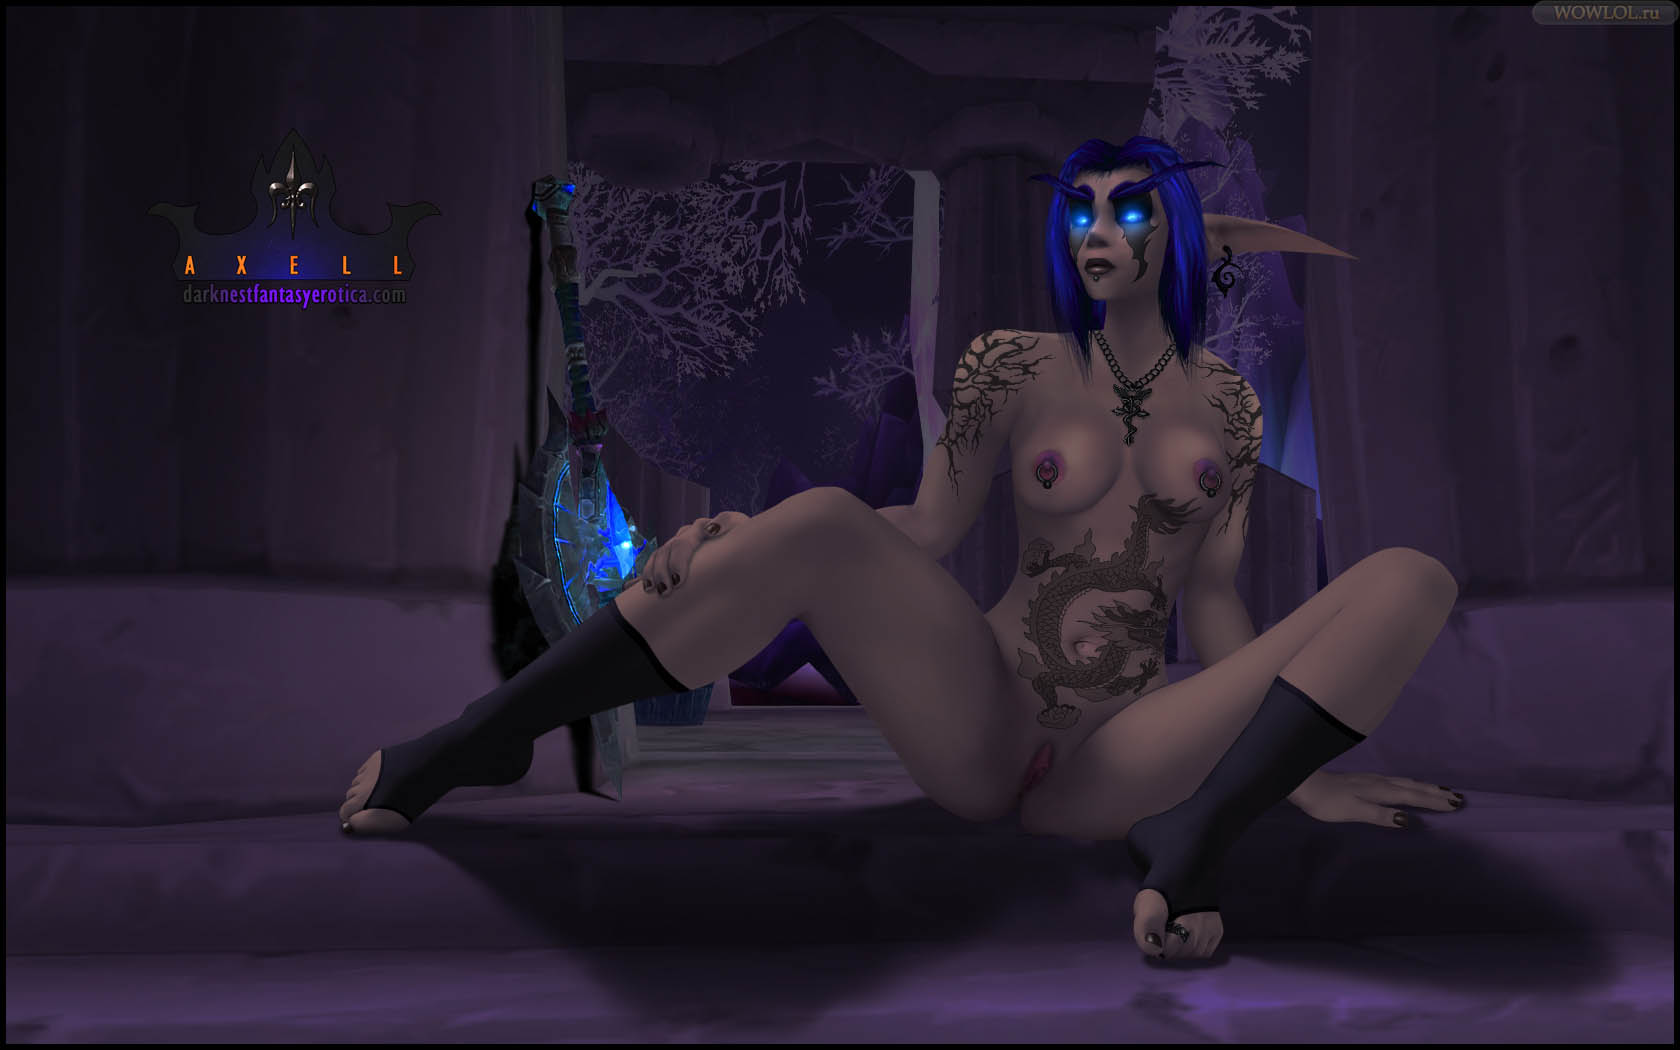 Warcraft 3 jaine proudmoore porno naked videos